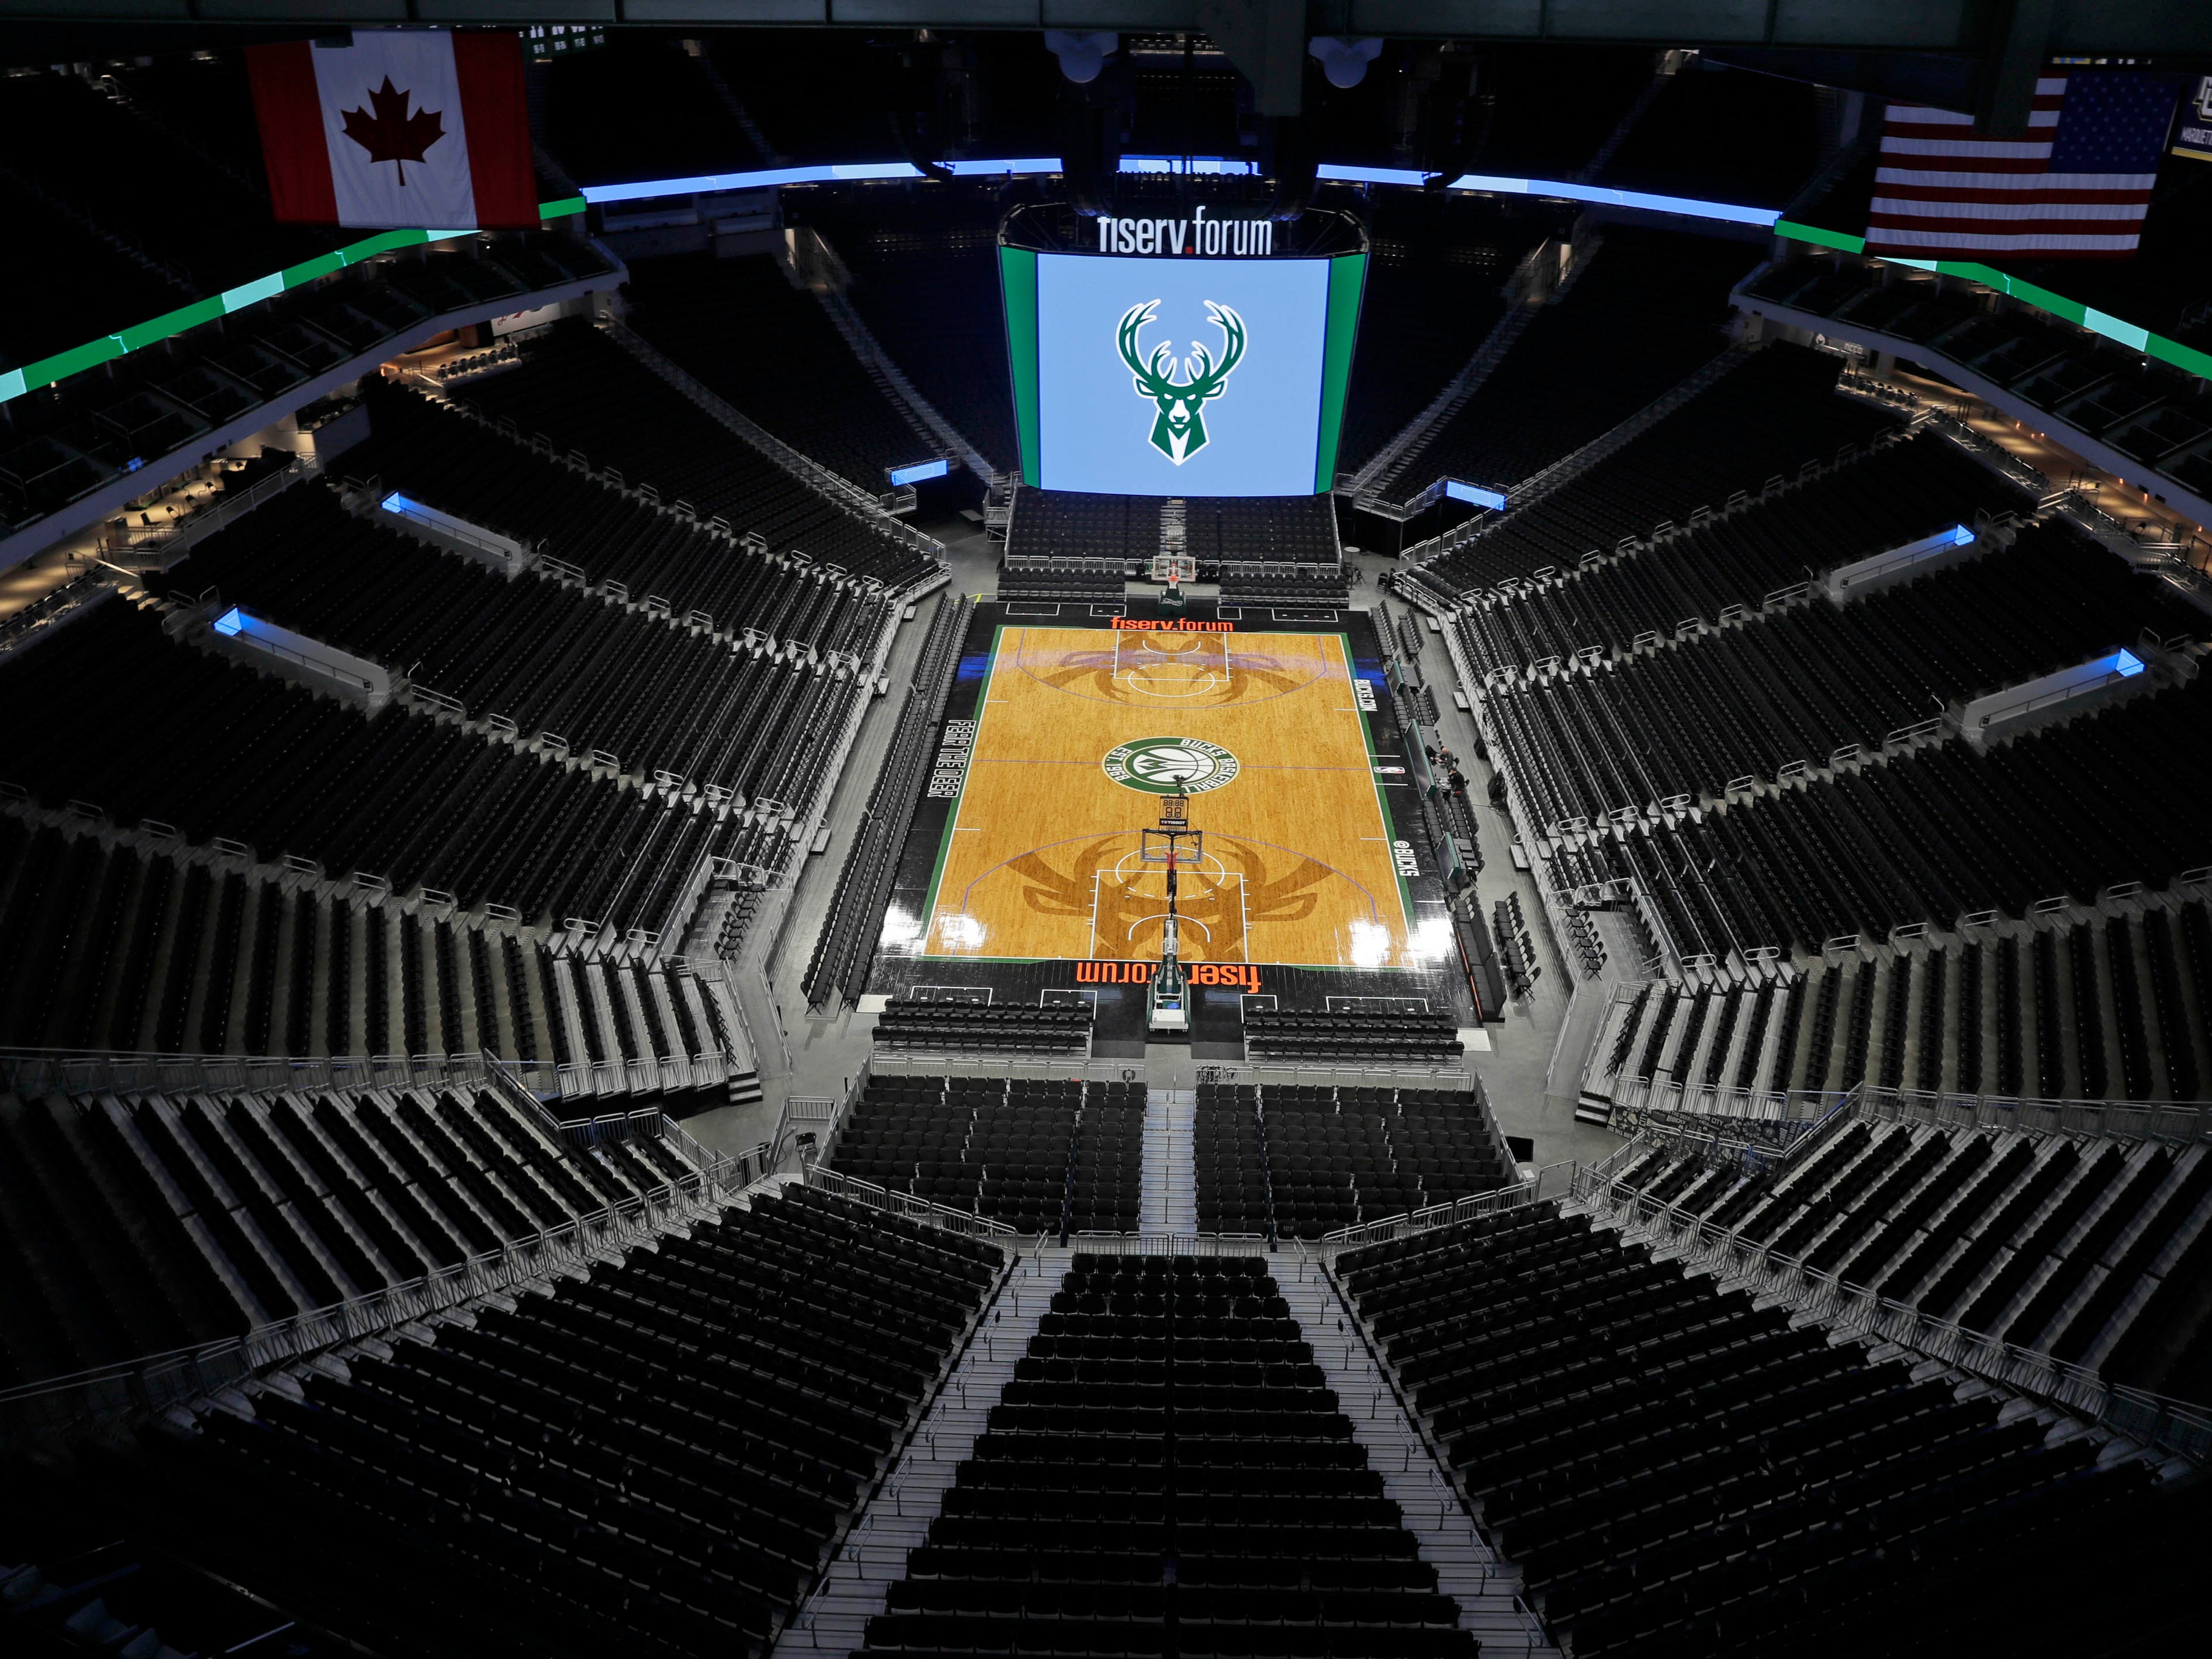 The Bucks have made some changes to the interior of the Fiserv Forum since opening.